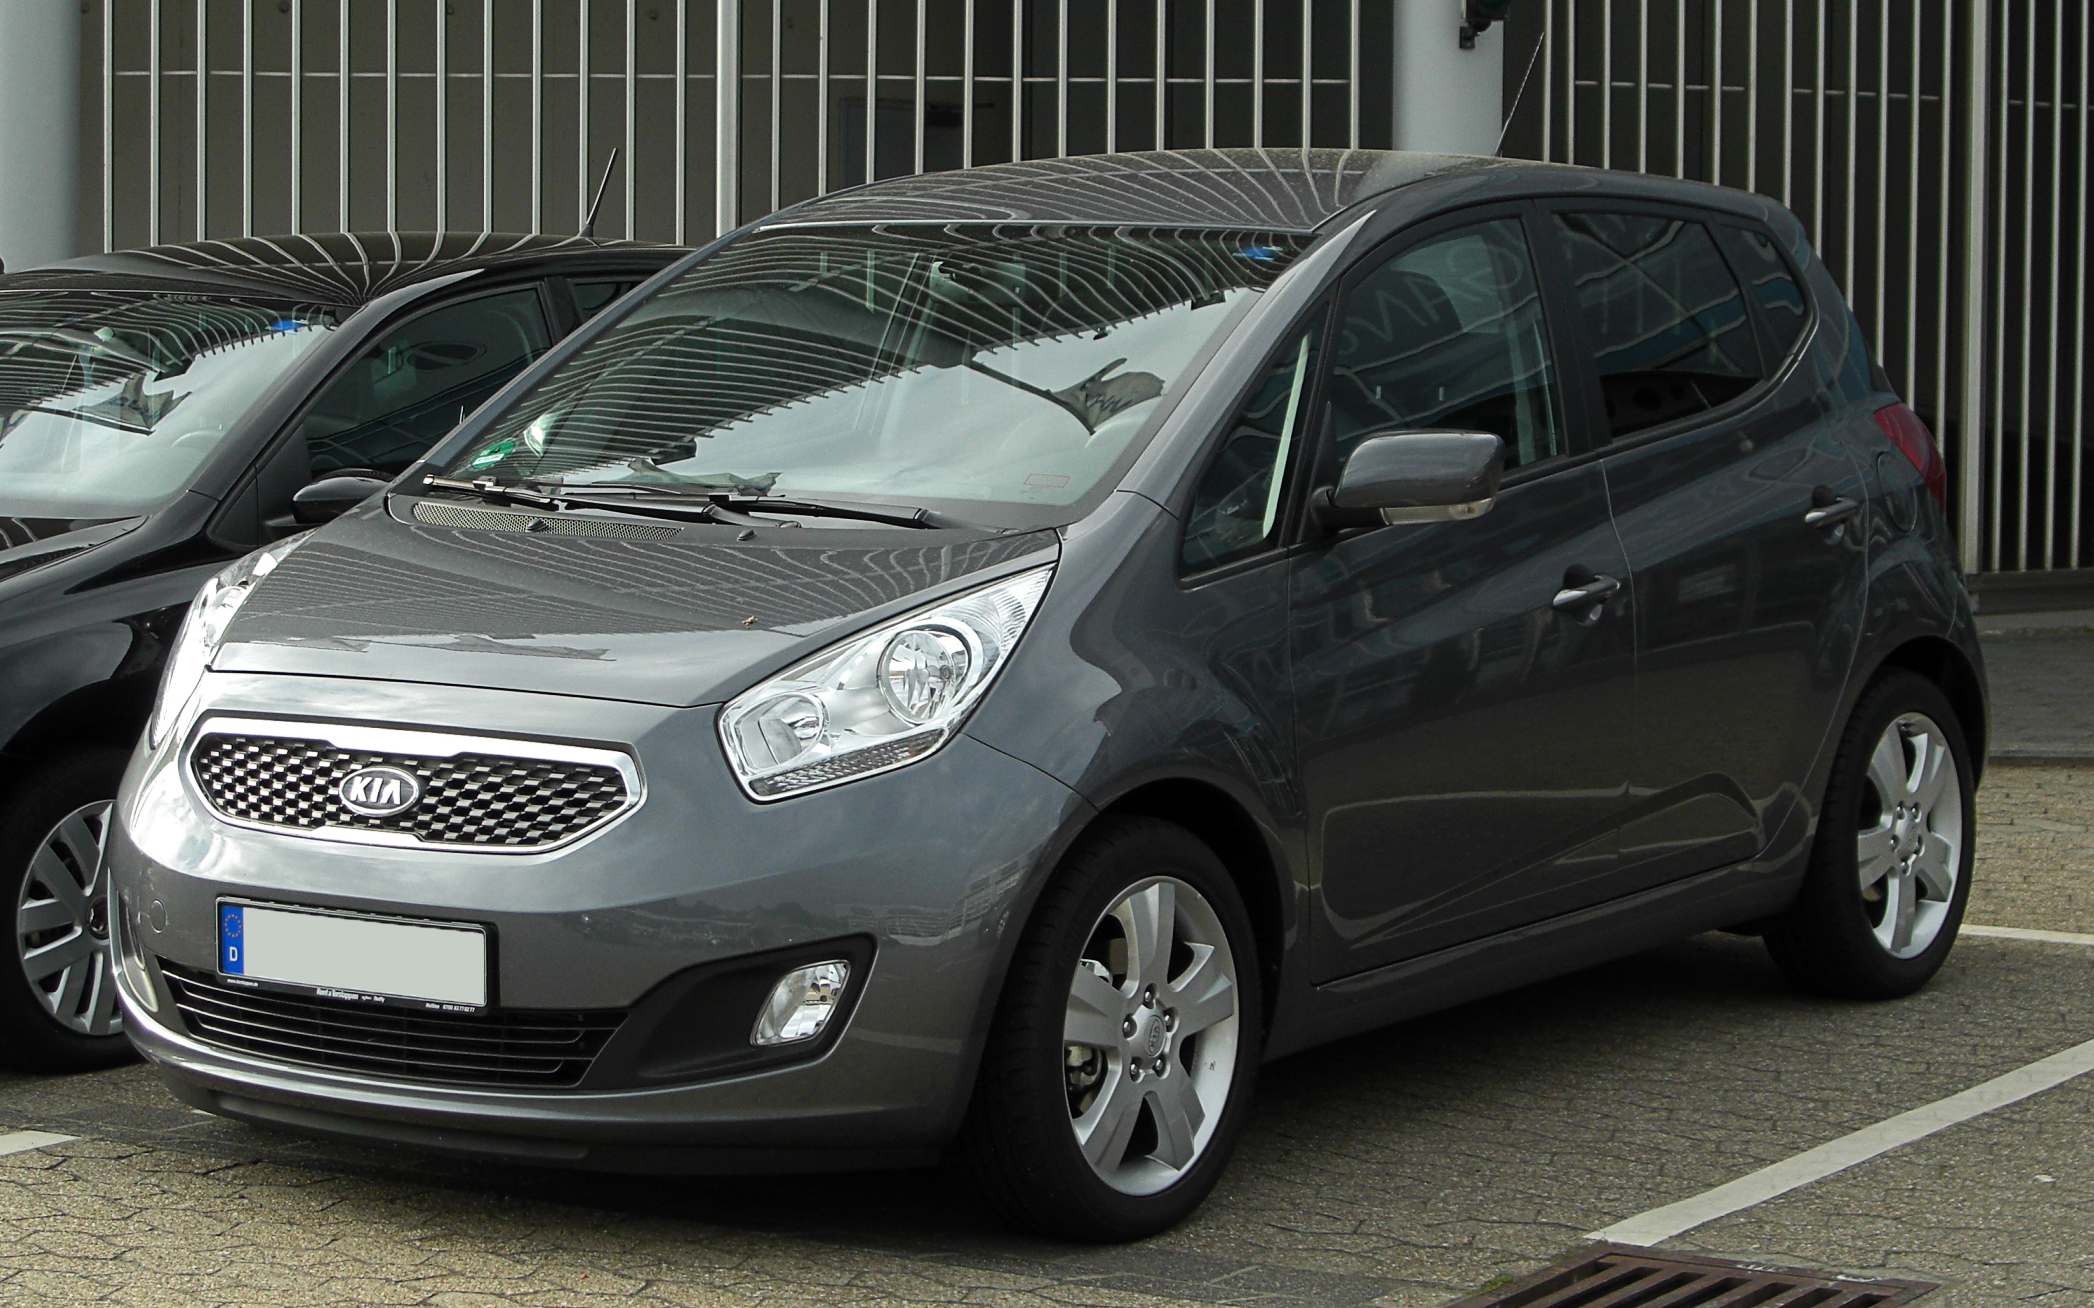 kia venga, photo #9